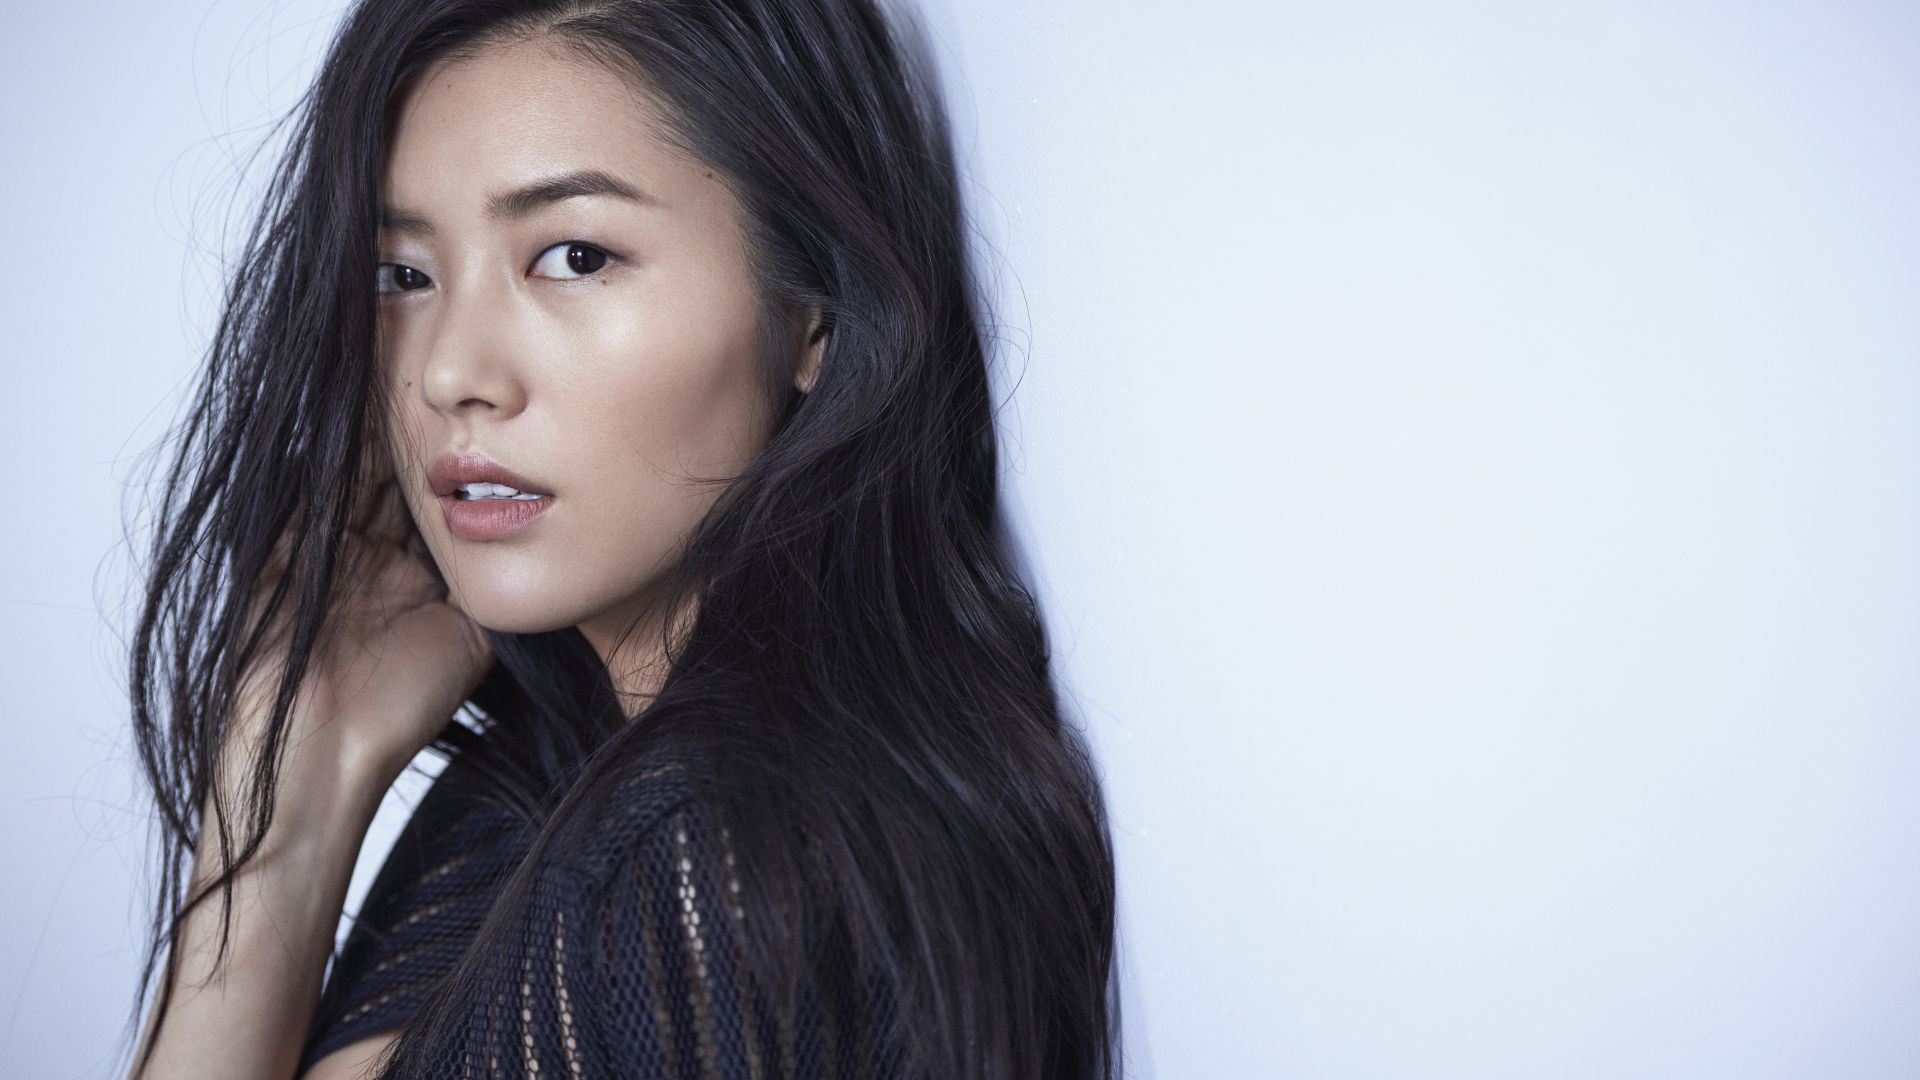 Liu Wen, beauty, 8k (horizontal)